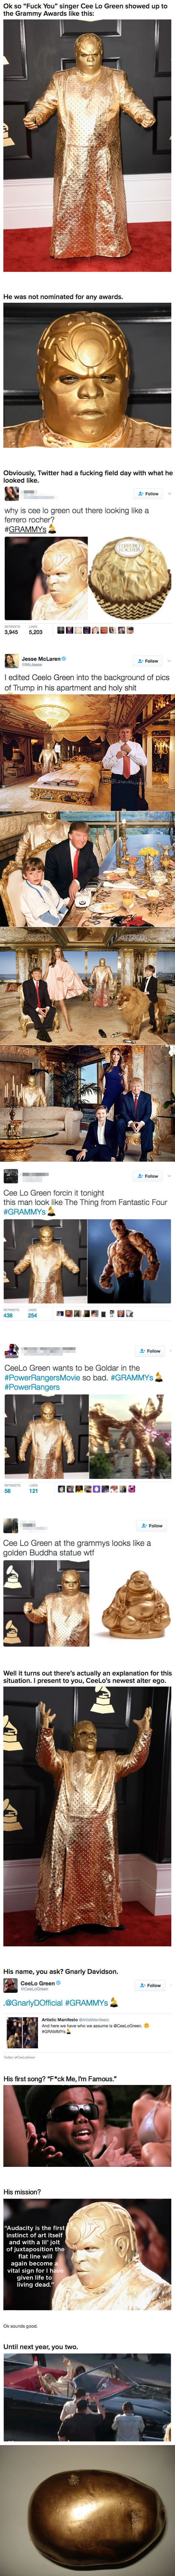 CeeLo Green Basically Asks To Be A Meme In Full Gold At The Grammys